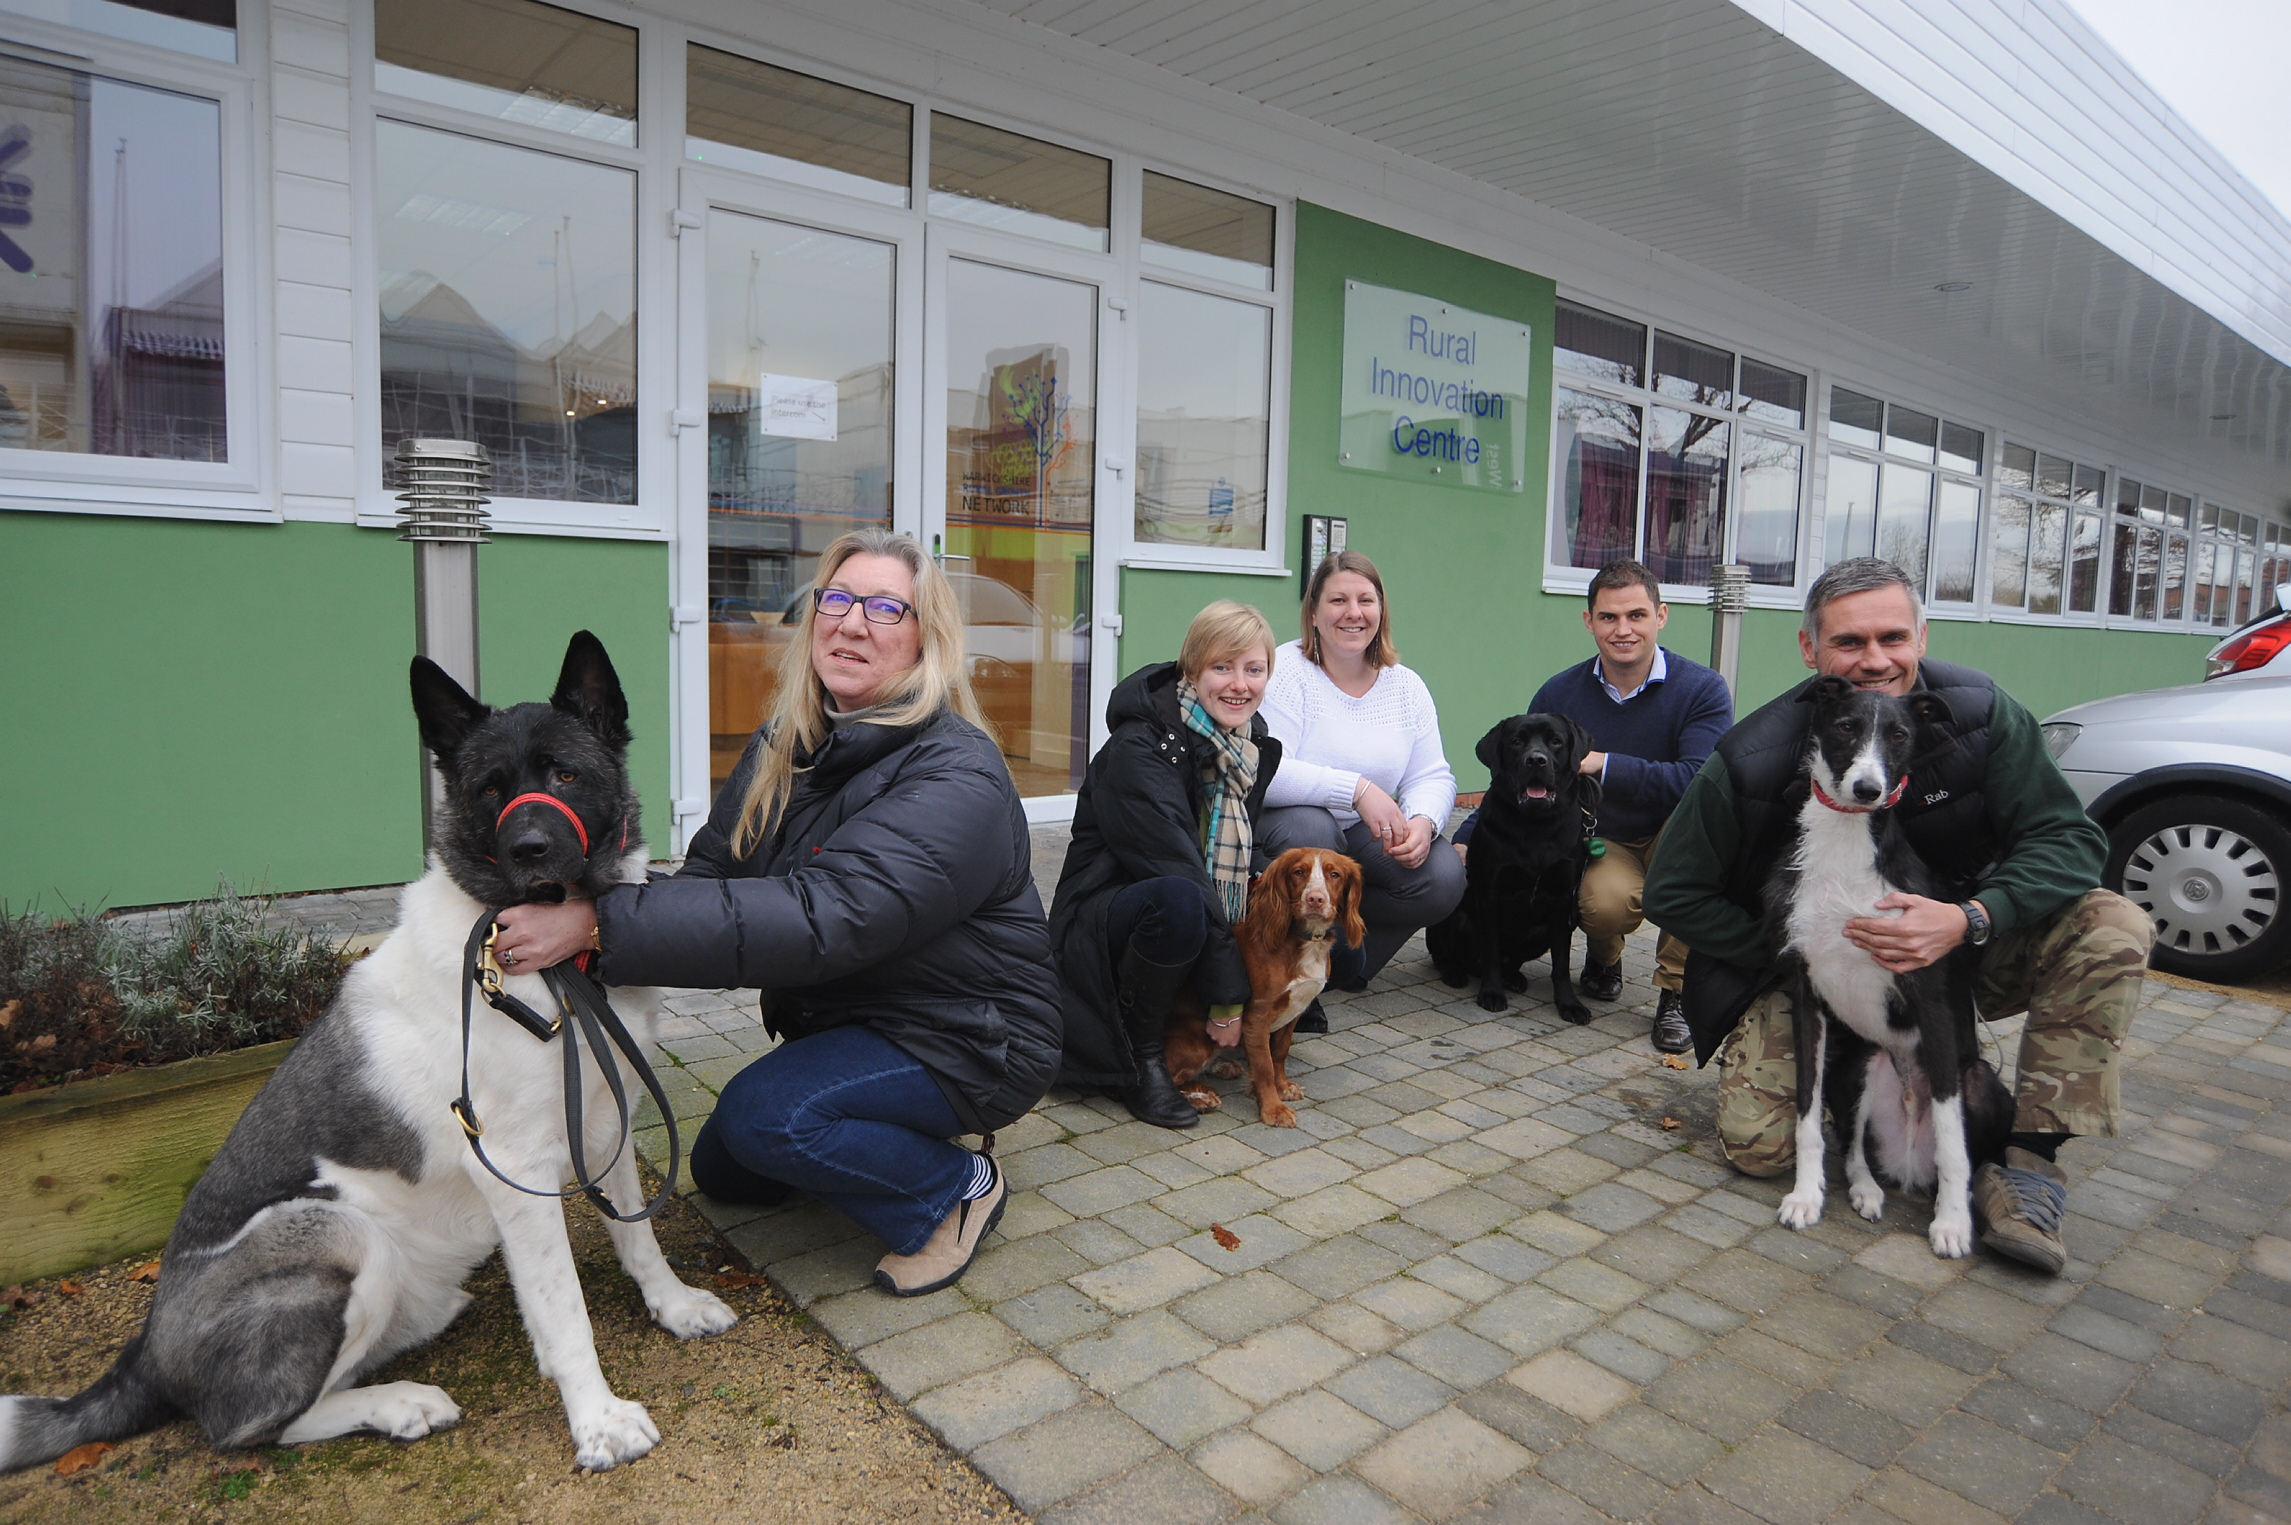 Dog-friendly Rural Innovation Centre